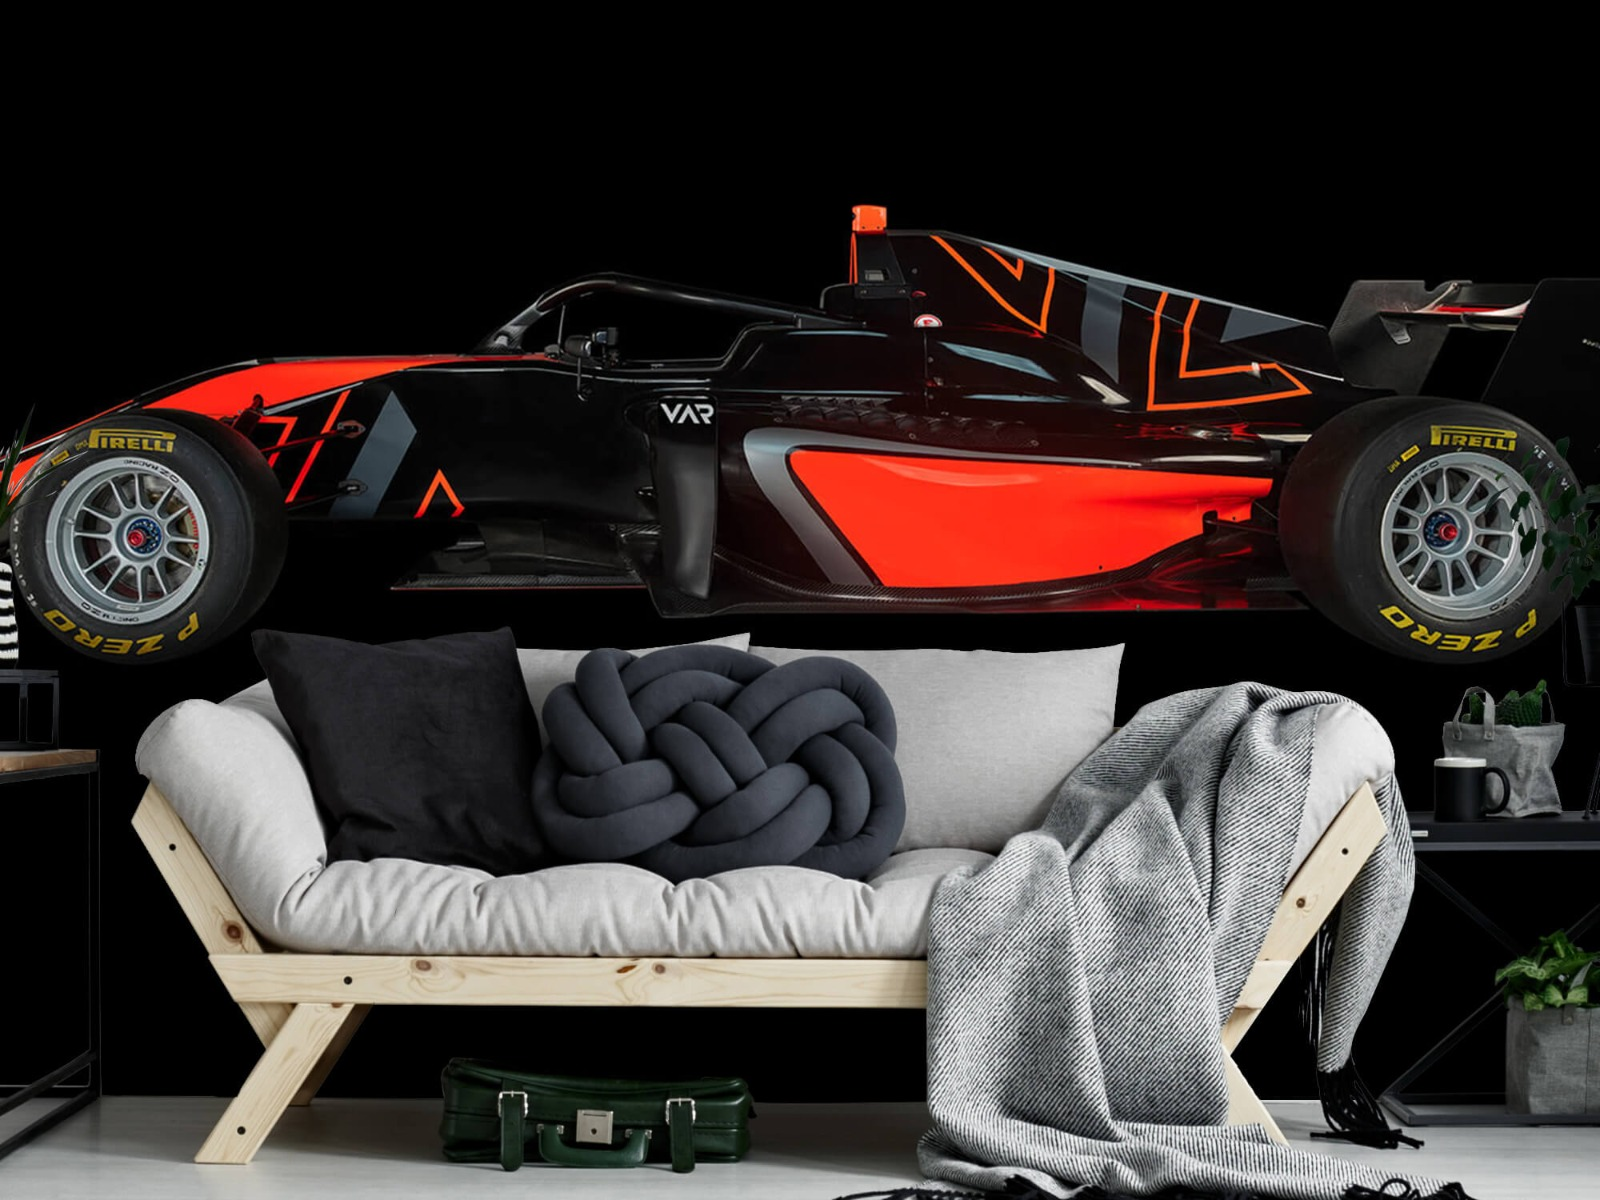 Sportauto's - Formule 3 - Lower side view - dark - Tienerkamer 7